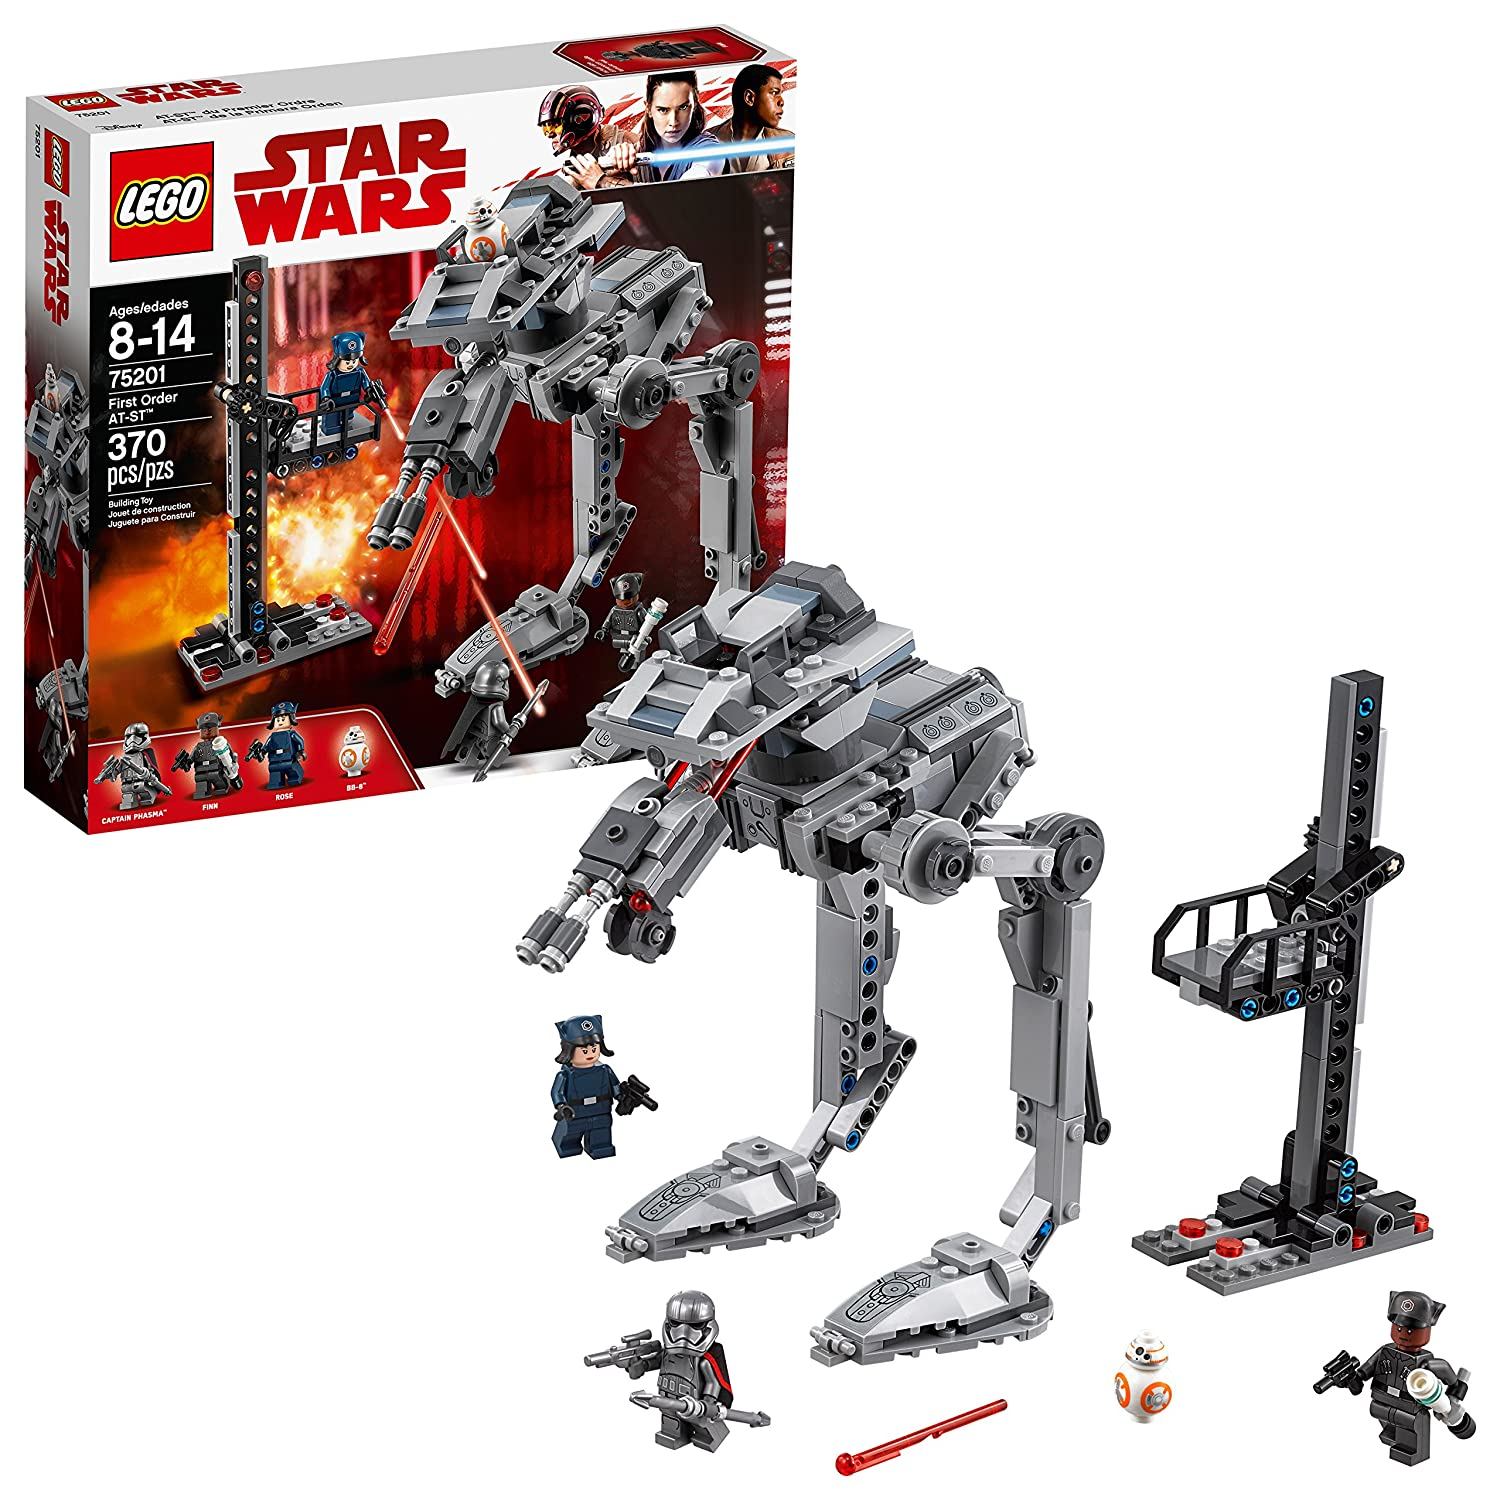 LEGO Star Wars: The Last Jedi First Order at-ST 75201 Building Kit (370 Piece) 6212562